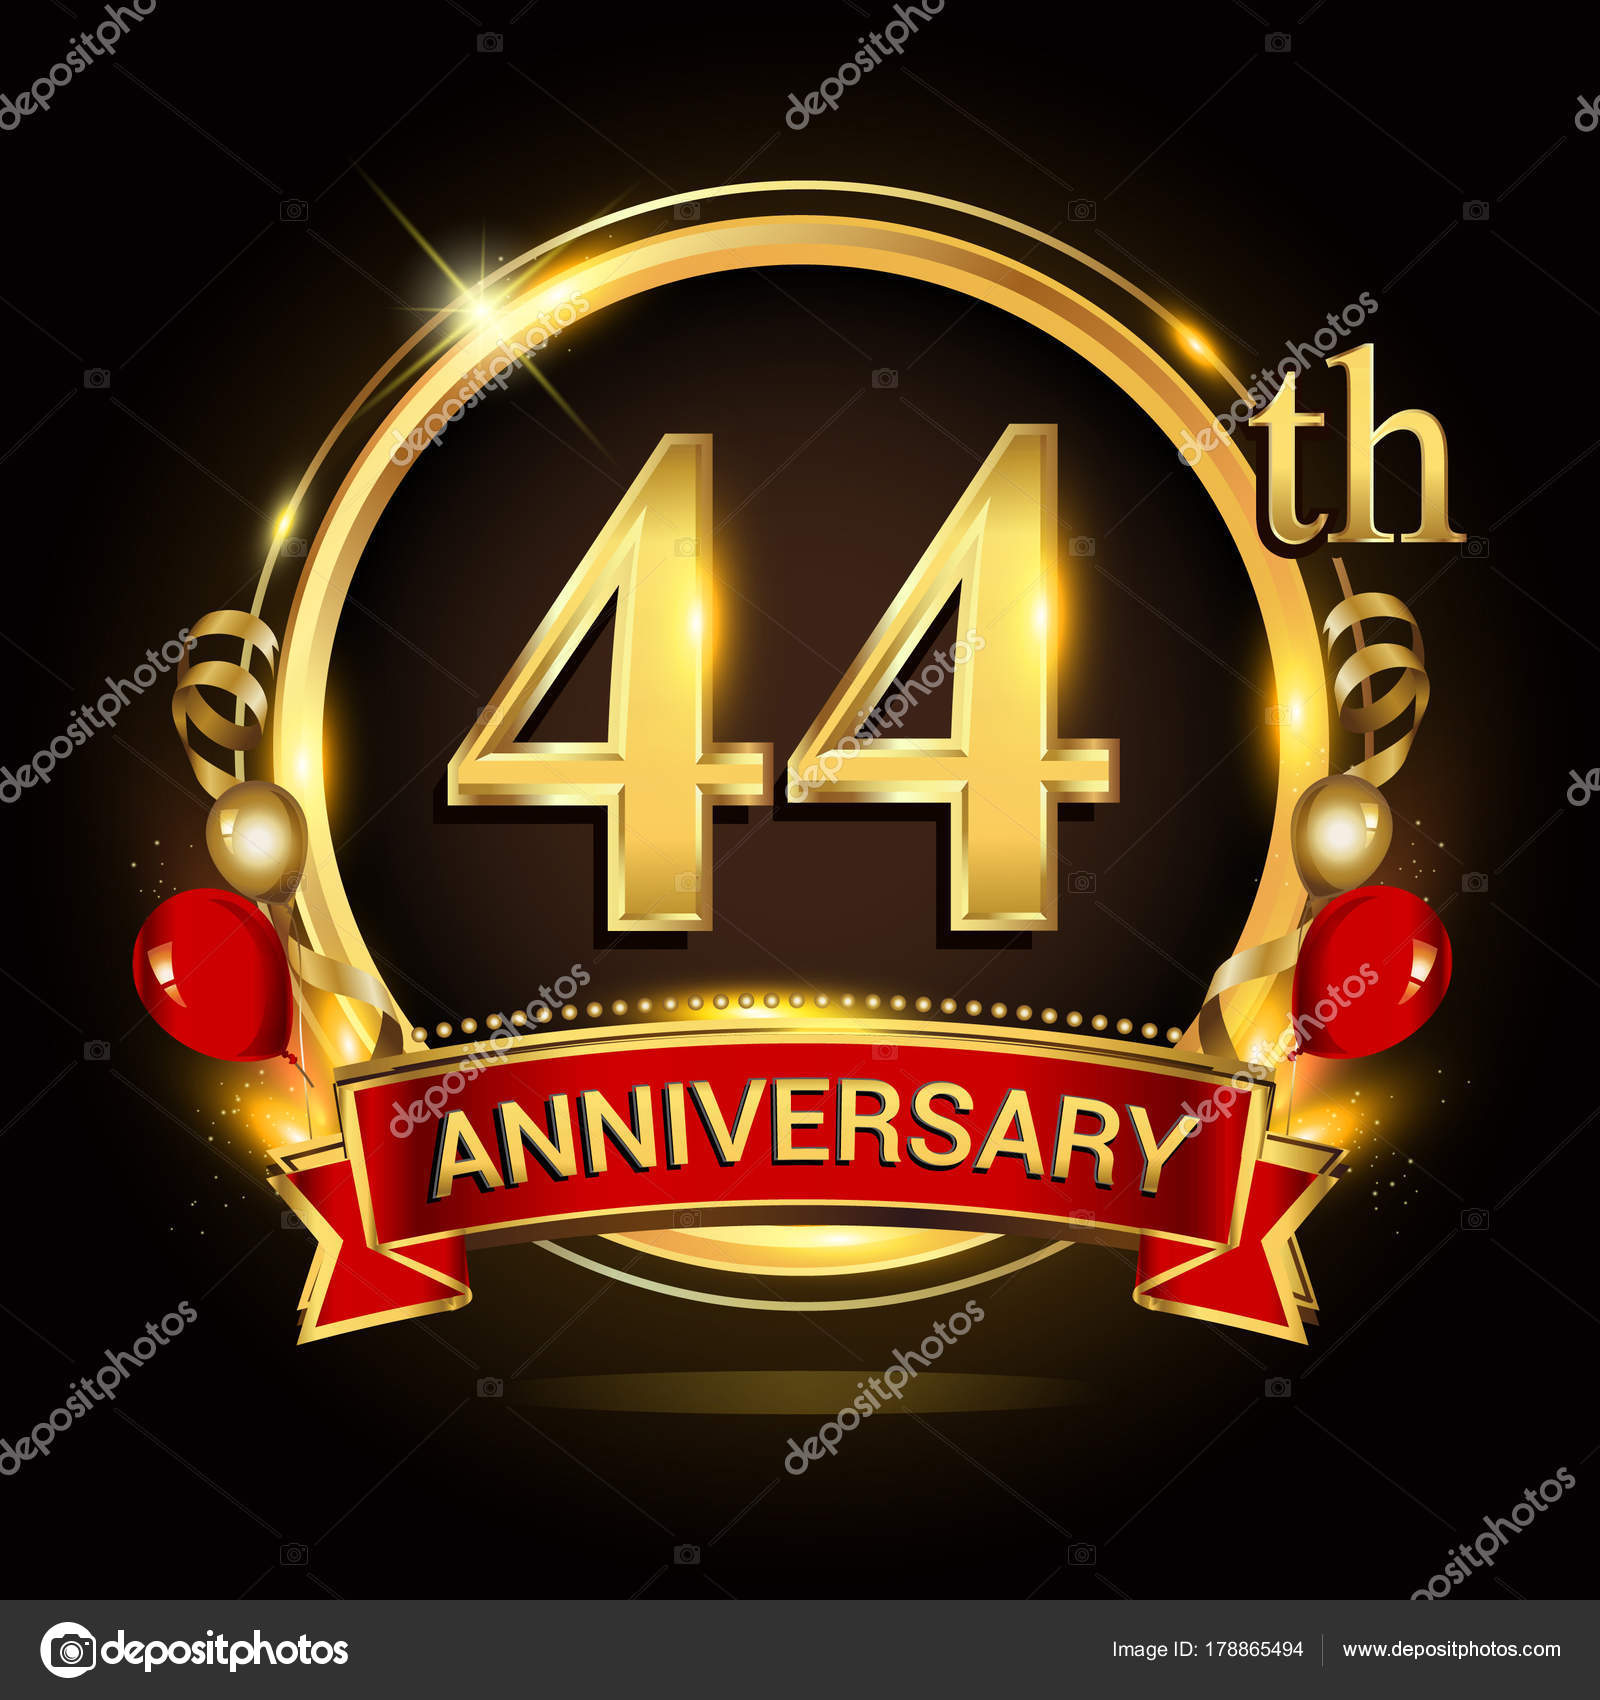 44th anniversary logo golden ring balloons red ribbon vector 44th anniversary logo golden ring balloons red ribbon vector design stock vector biocorpaavc Gallery